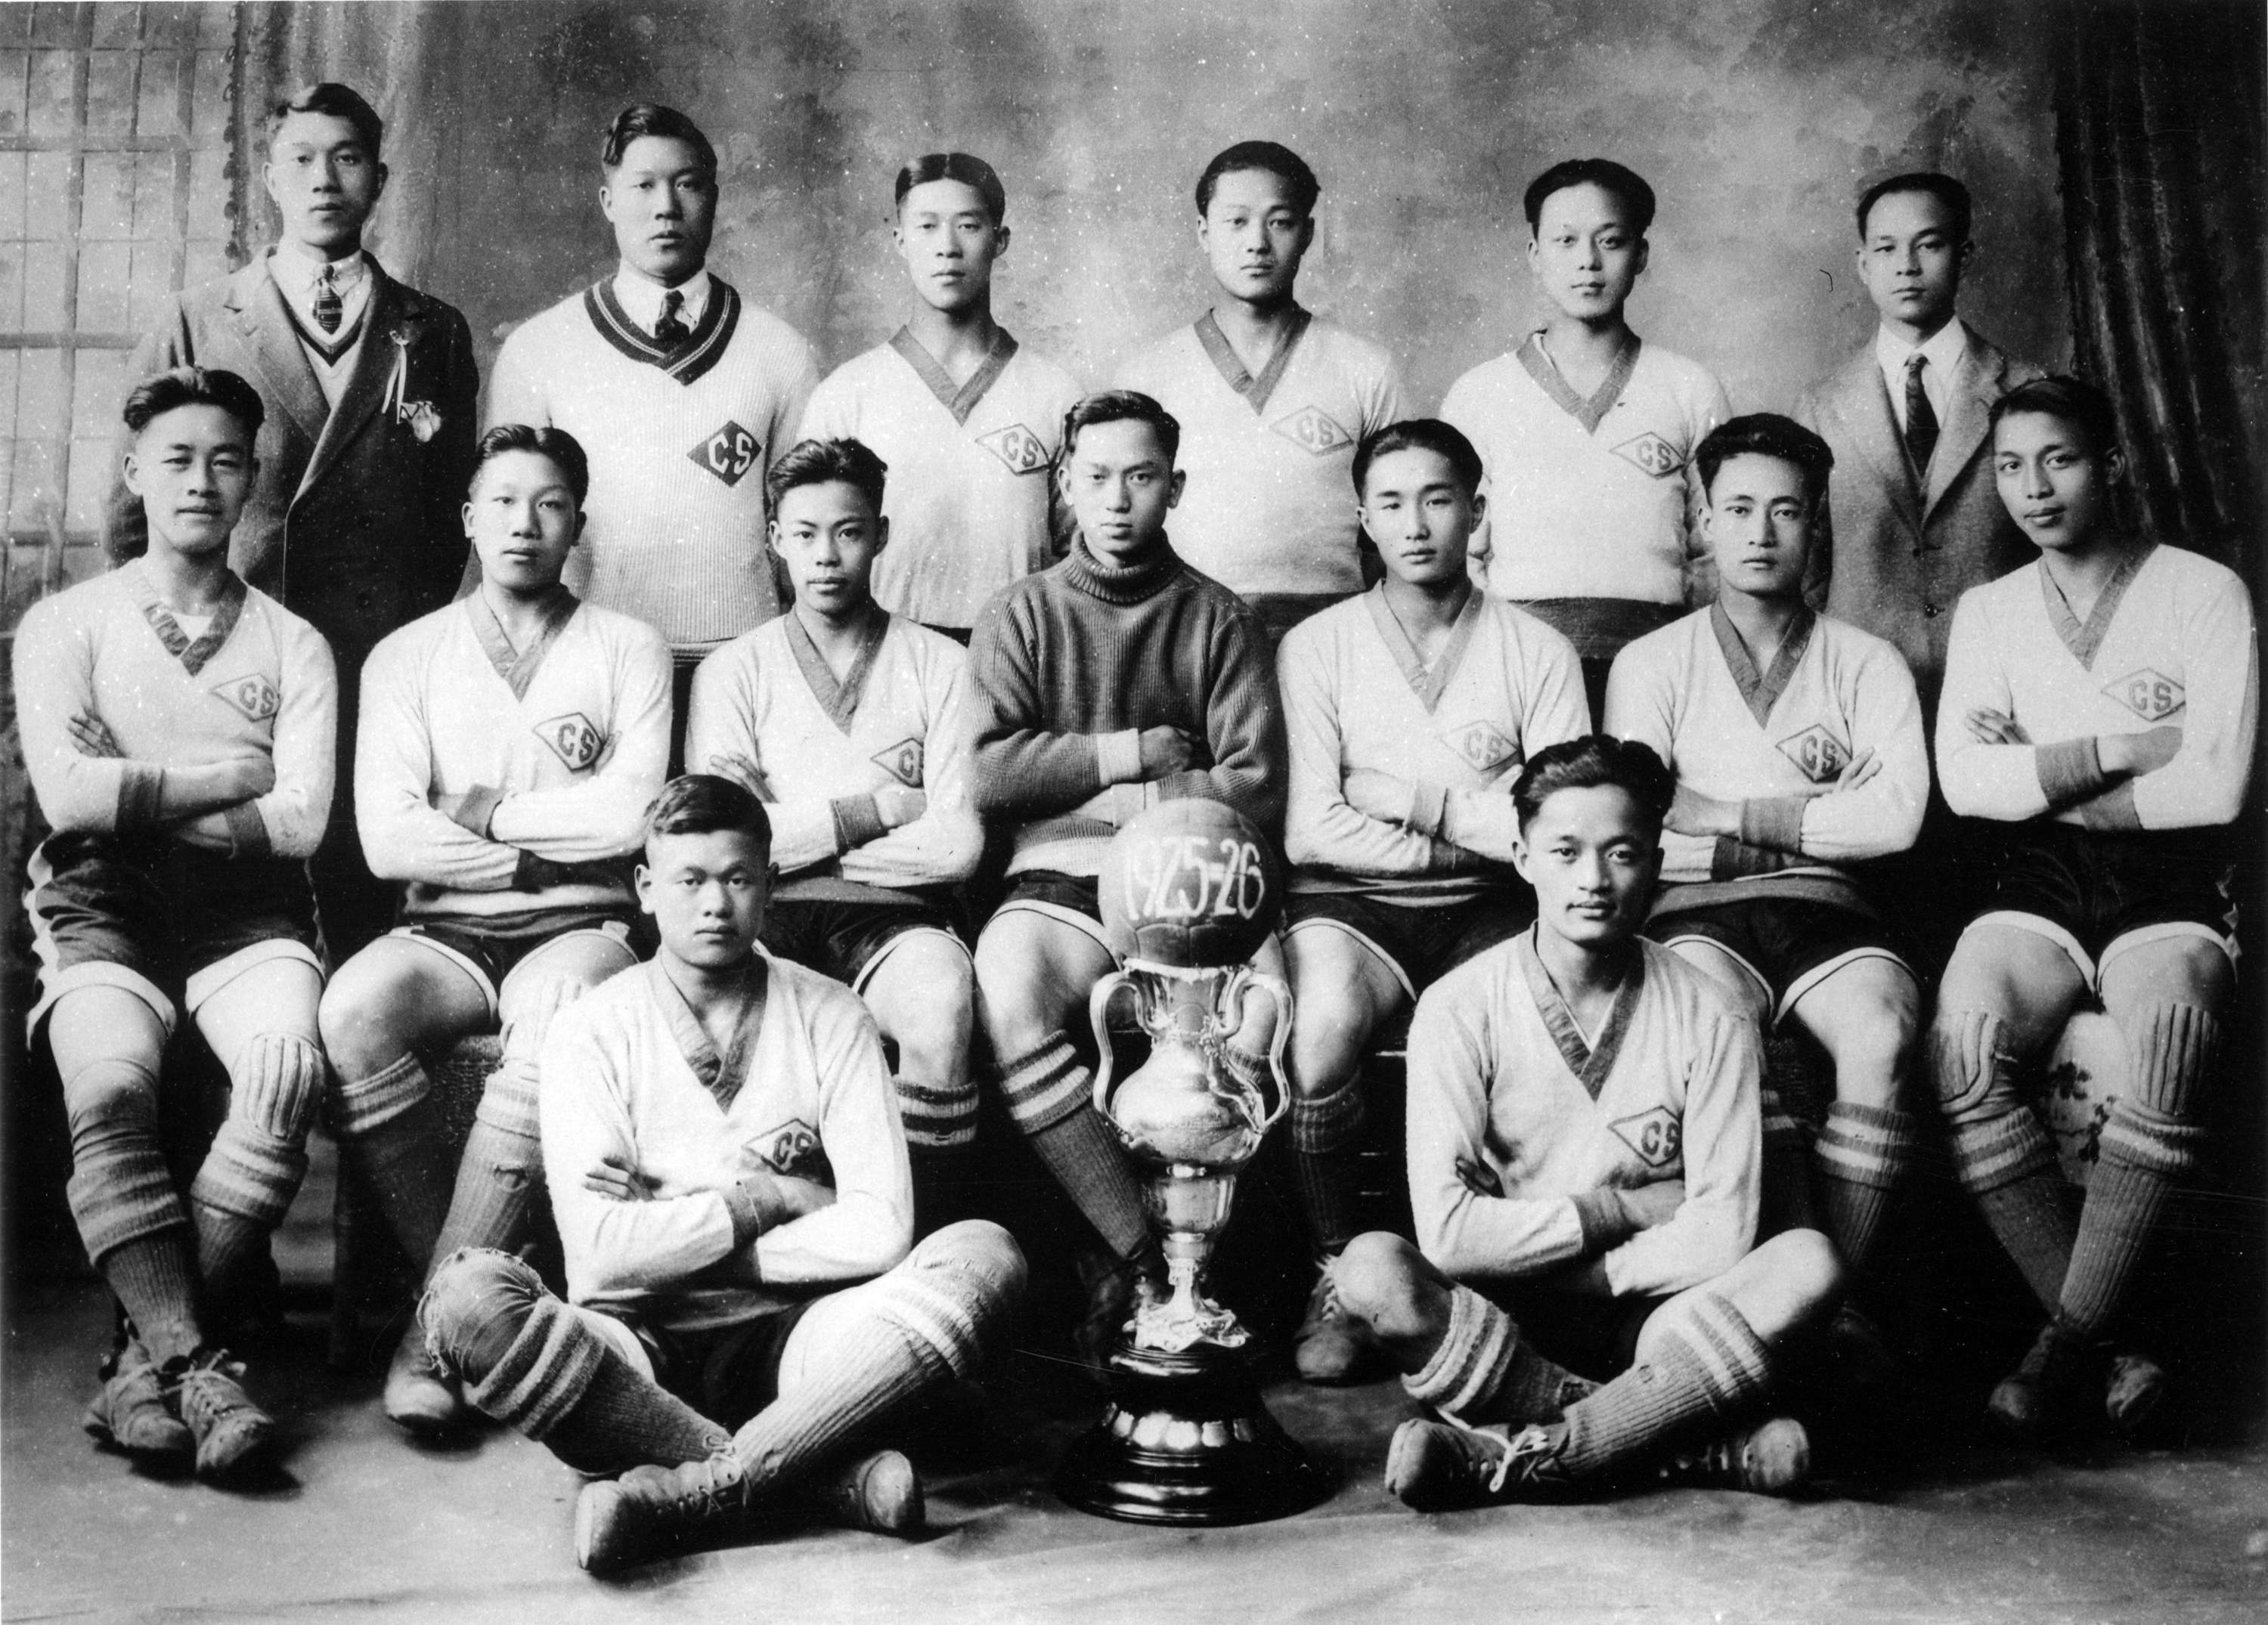 Chinese Students' Athletic Association soccer team, ca. 1925.